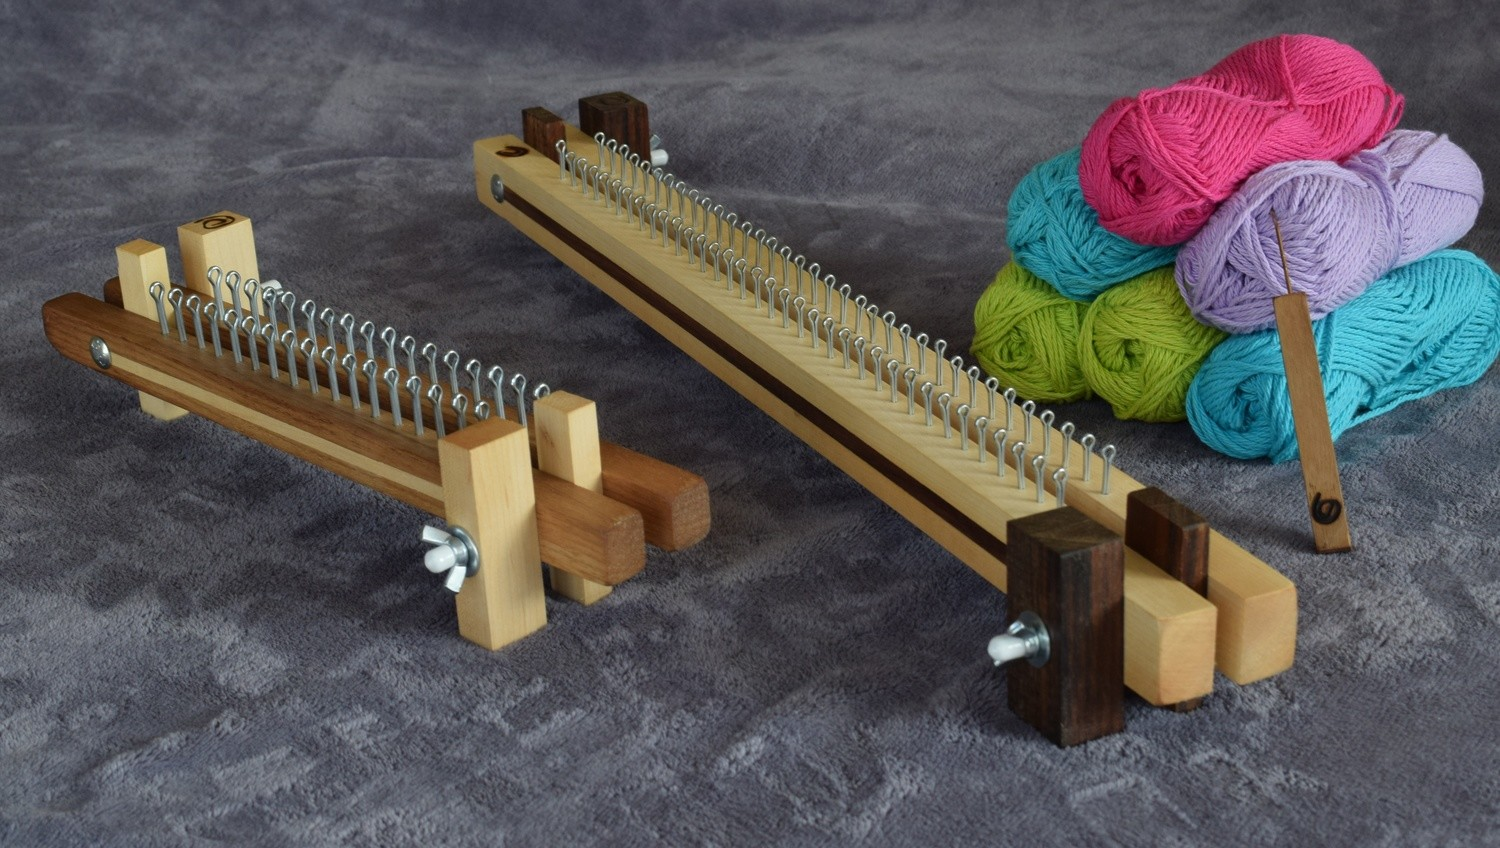 Knitting loom (fixed) with hook tool